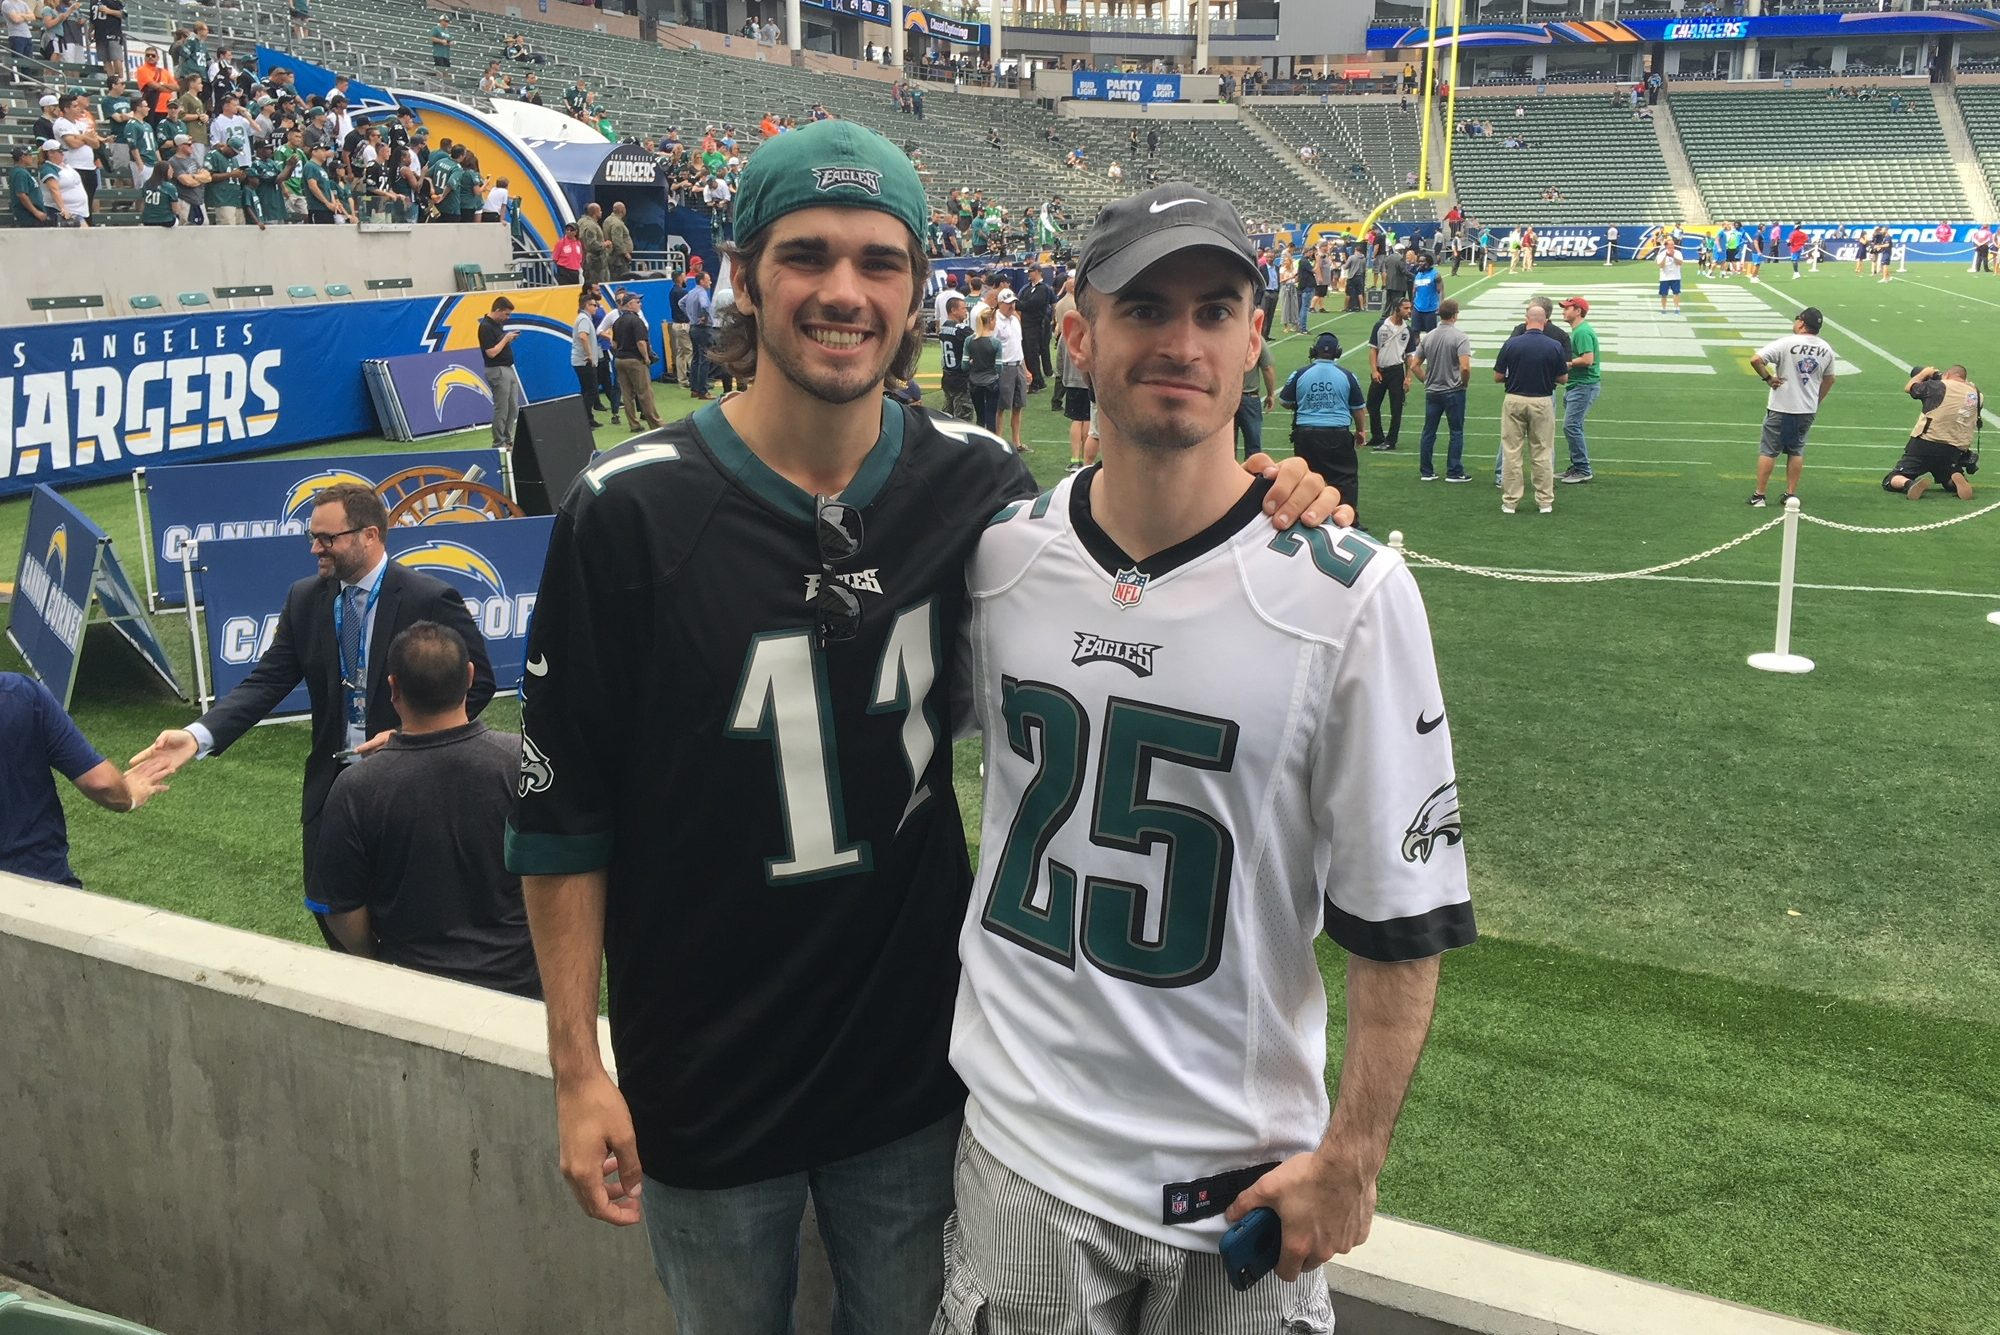 Andrew Immordino, 24, on left, and his brother, Scott Mantz, 31, were best friends and die-hard Eagles fans. Mantz died of a heart attack on New Year´s Eve. Immordino will bring his brother´s ashes to the Super Bowl as his final send-off.